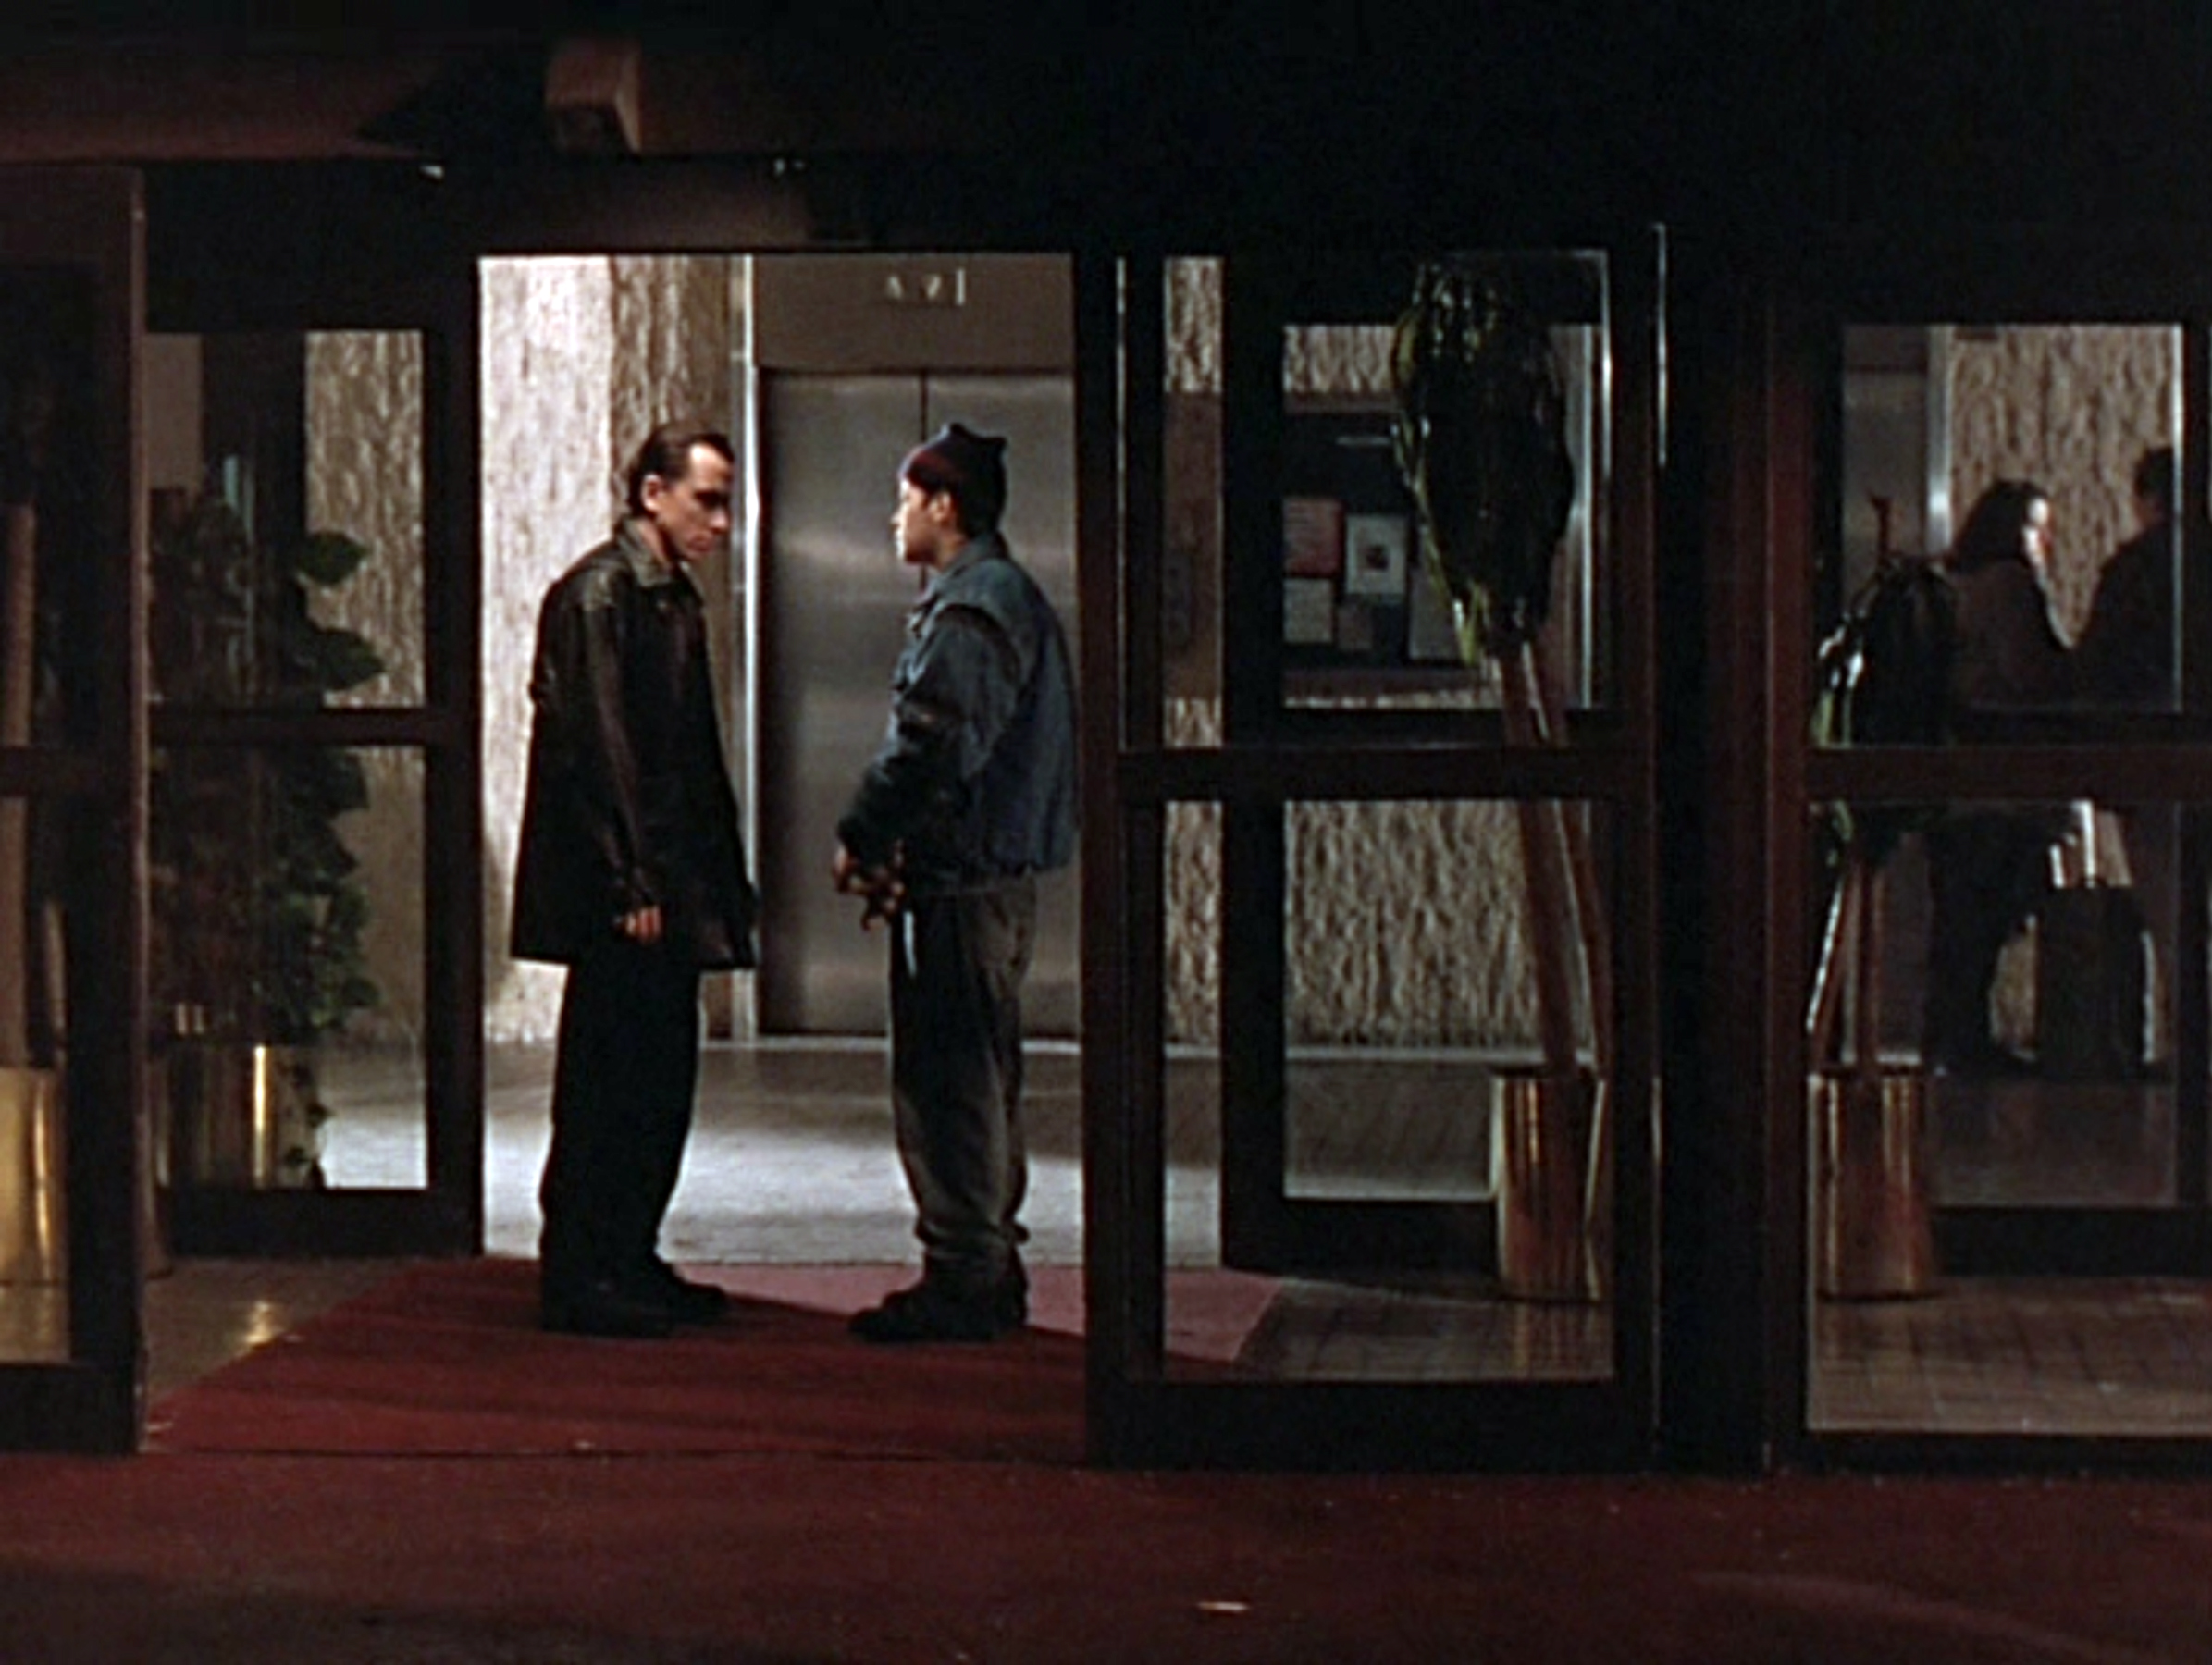 Reuben confronts Josh (Tim Roth) when he learns he's returned to the neighborhood